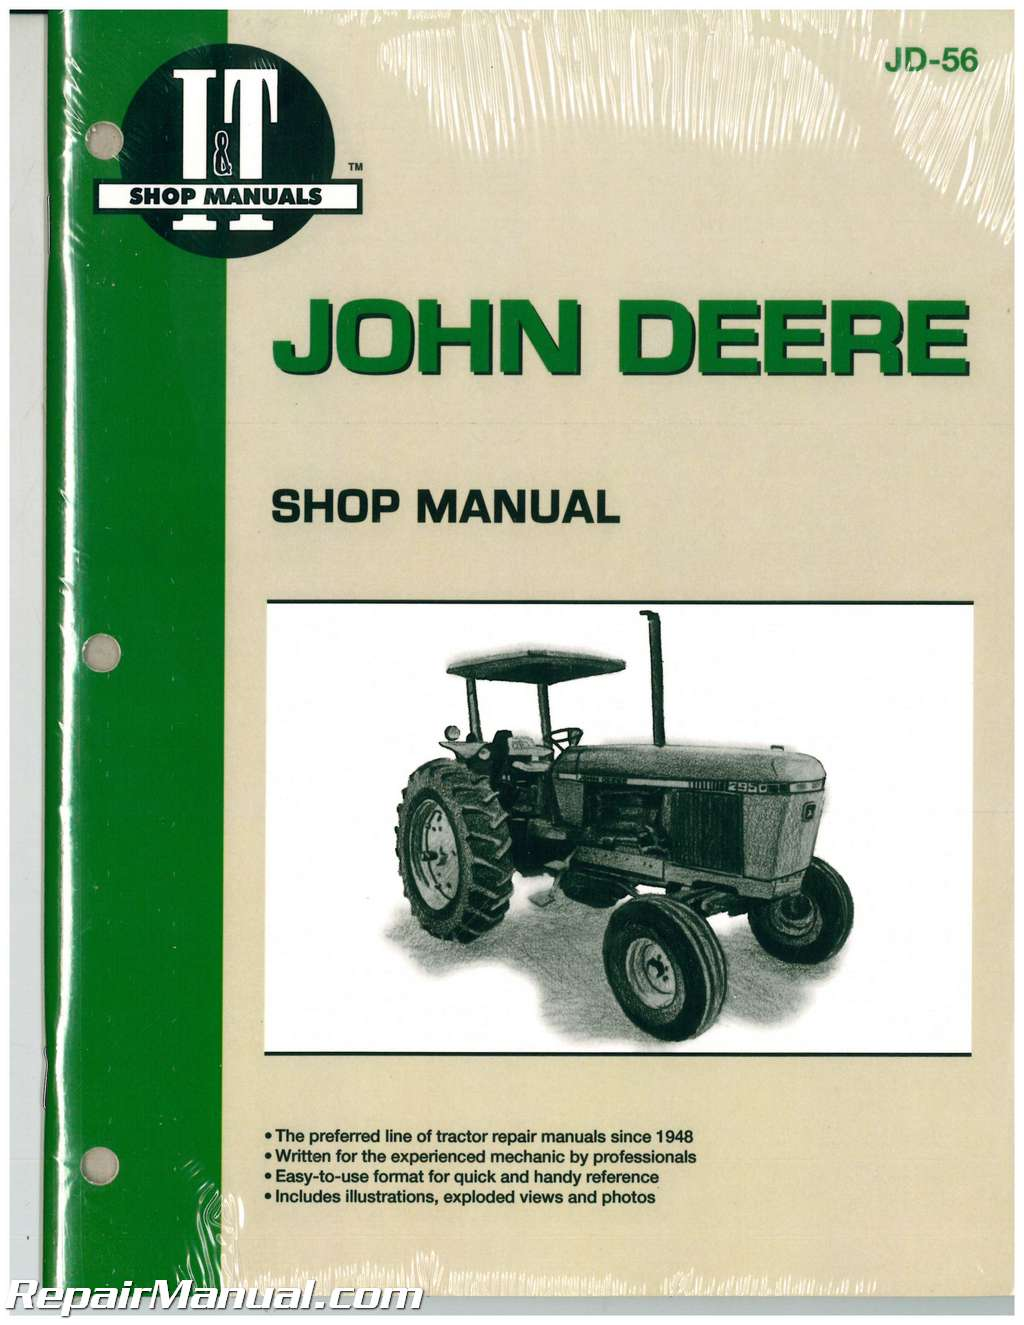 John Deere 2940 Wiring Diagram Free Picture Reinvent Your Model A Ignition 2840 2950 Tractor Workshop Manual Rh Repairmanual Com 2040 Parts